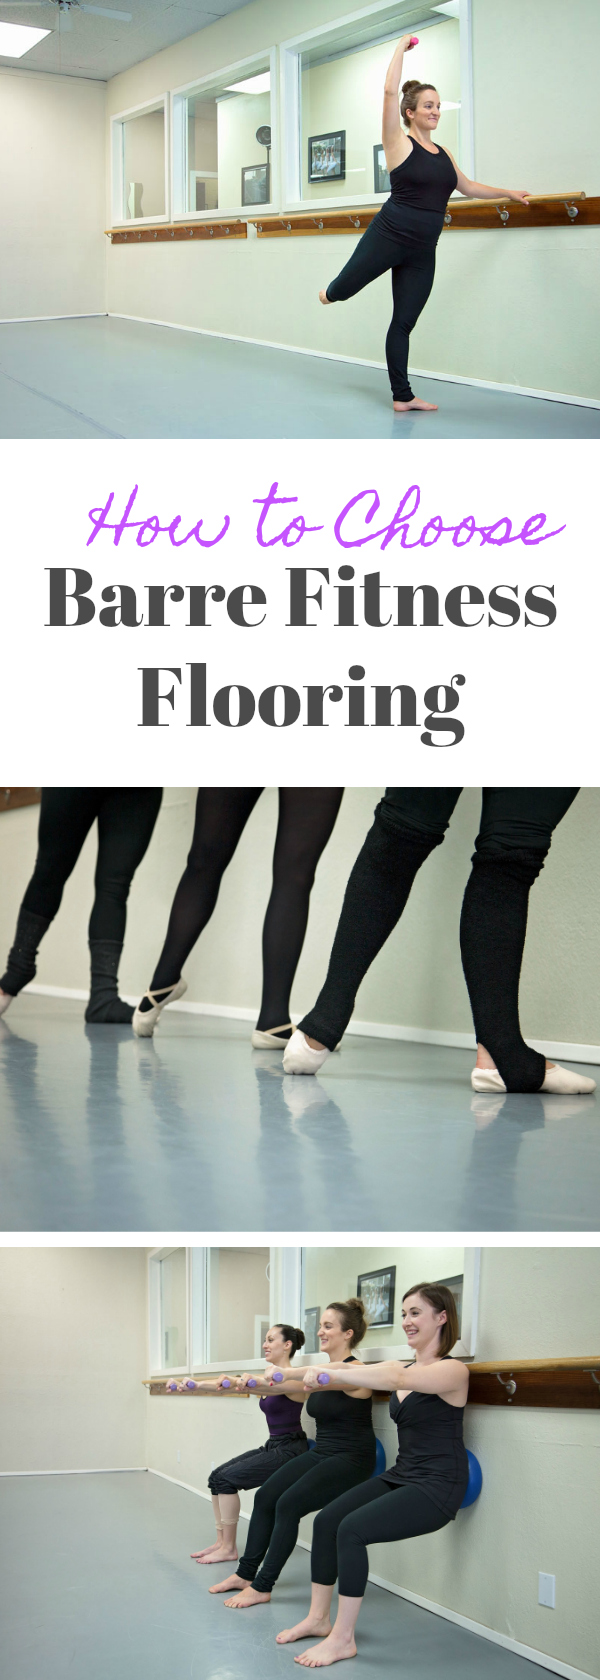 Barre Fitness Flooring: How to choose the best flooring for a barre fitness studio